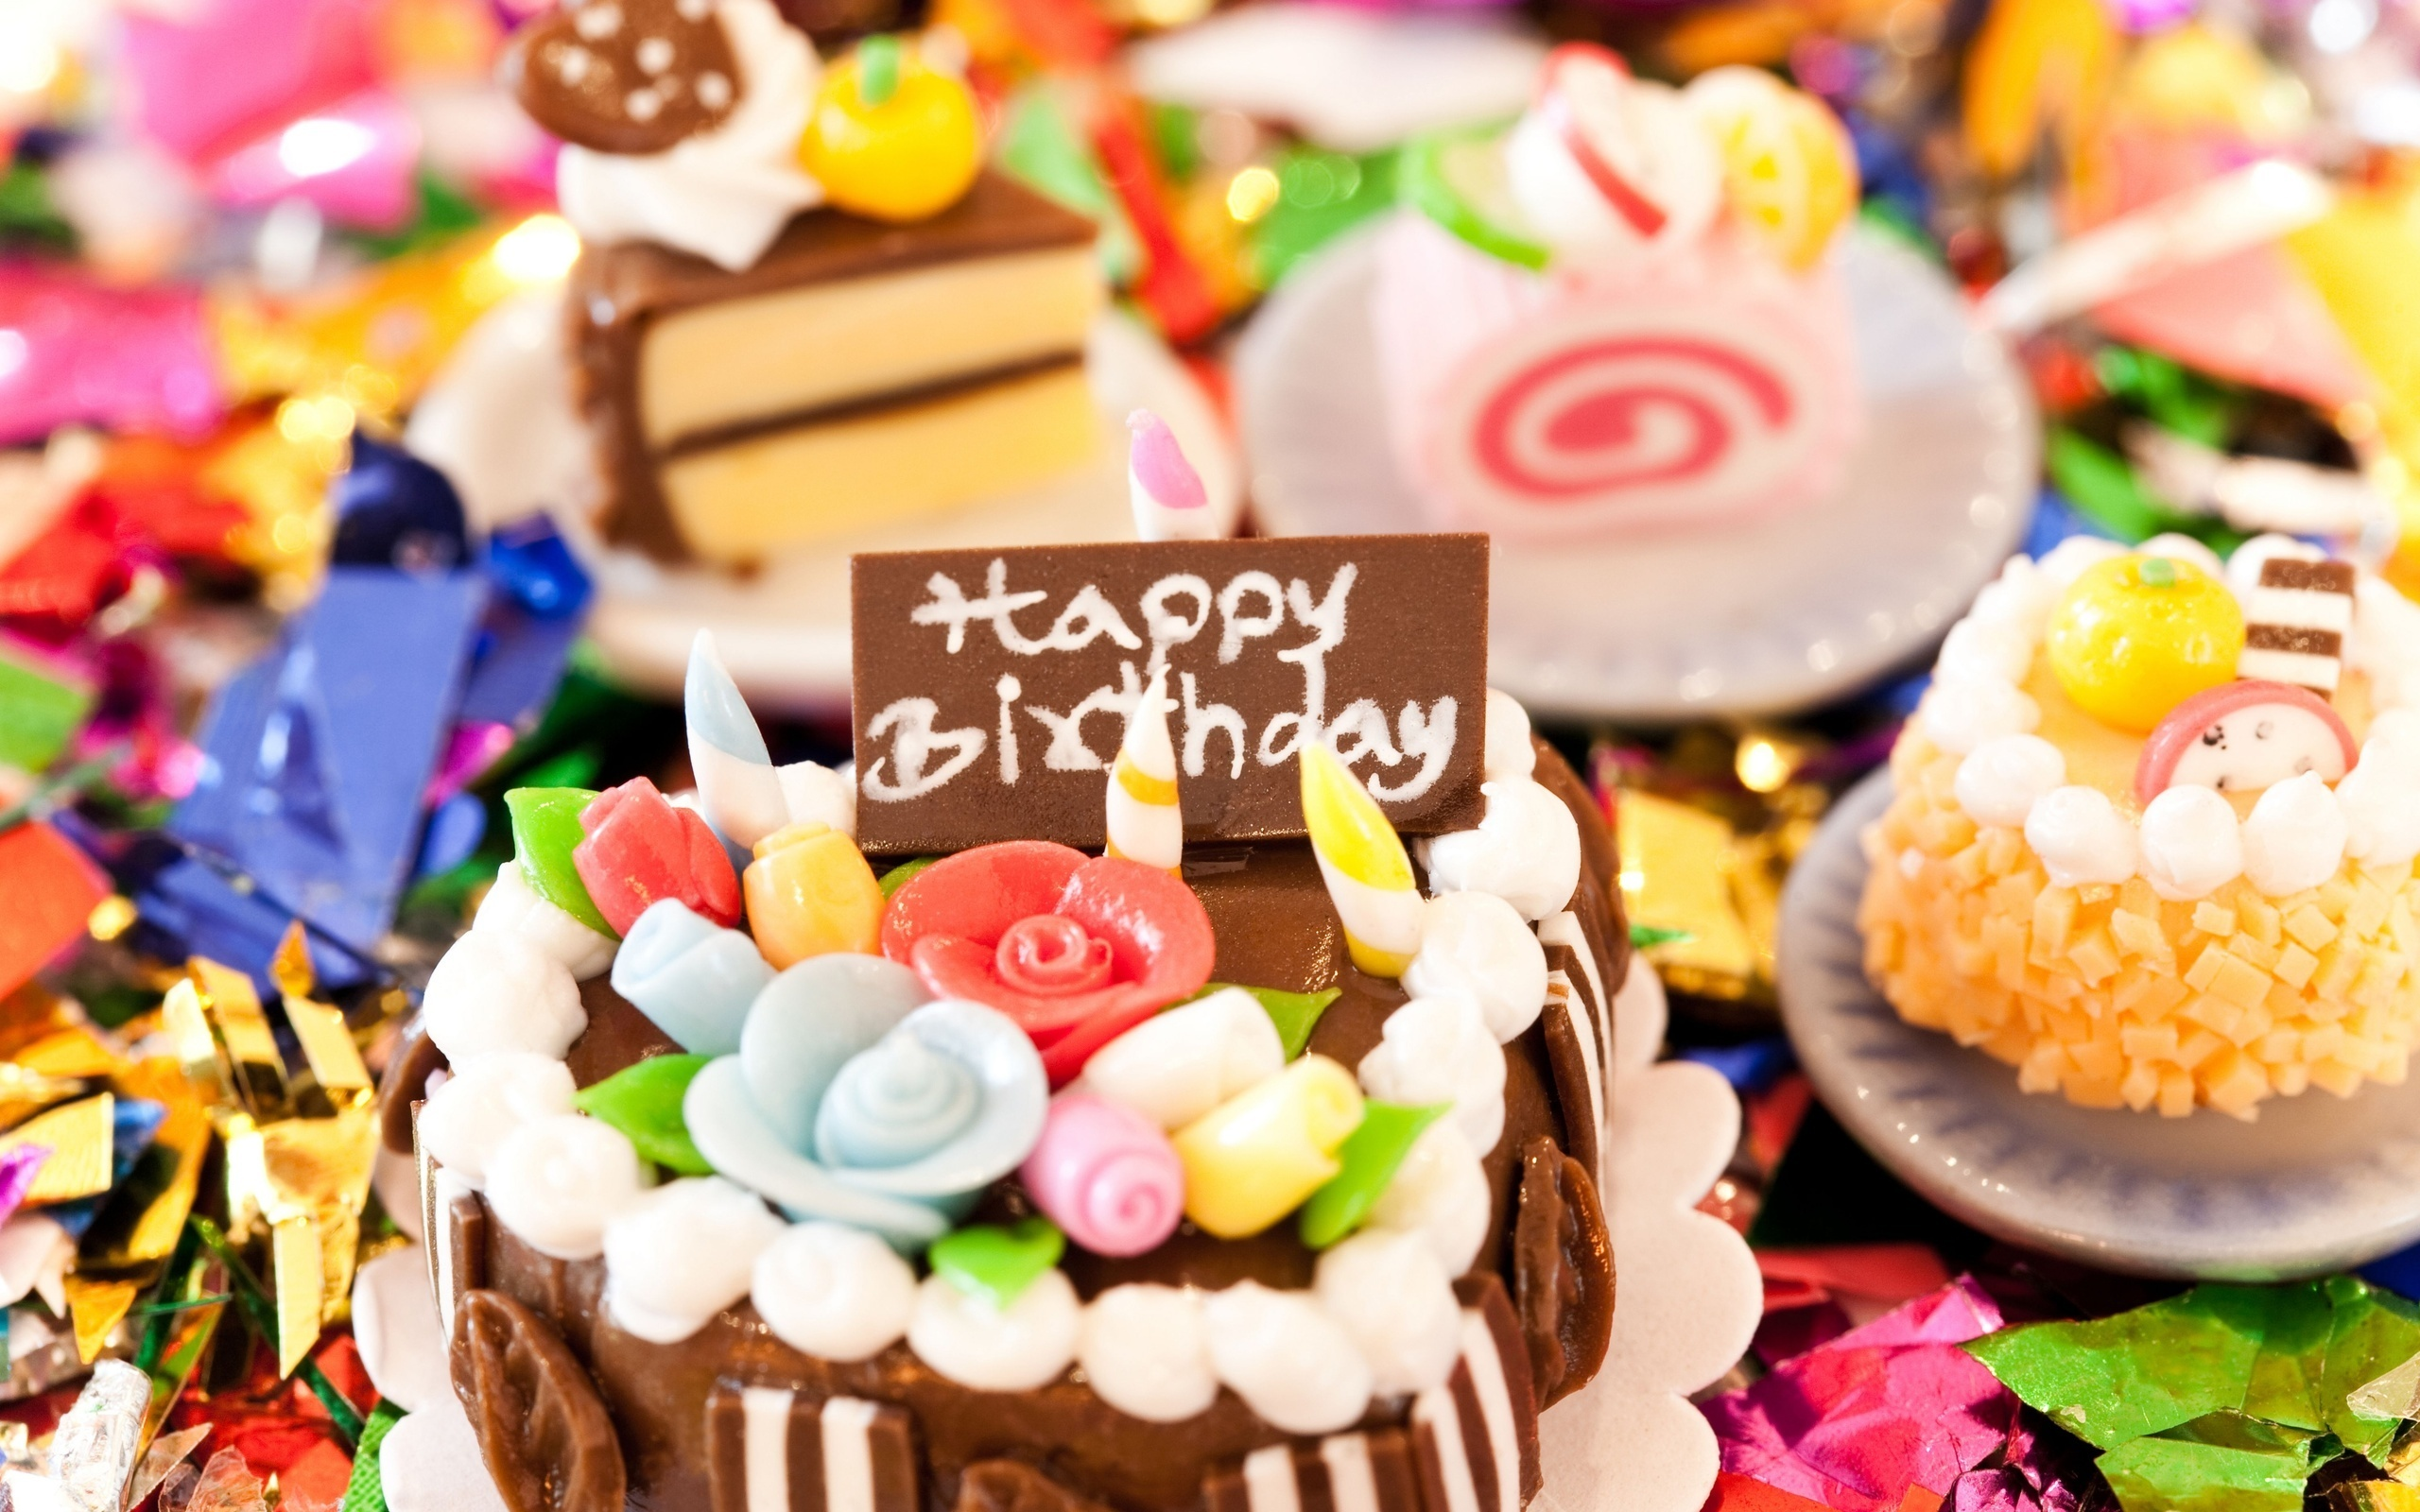 The Funny Birthday Wishes That Can Make Your Friends Laugh on Their